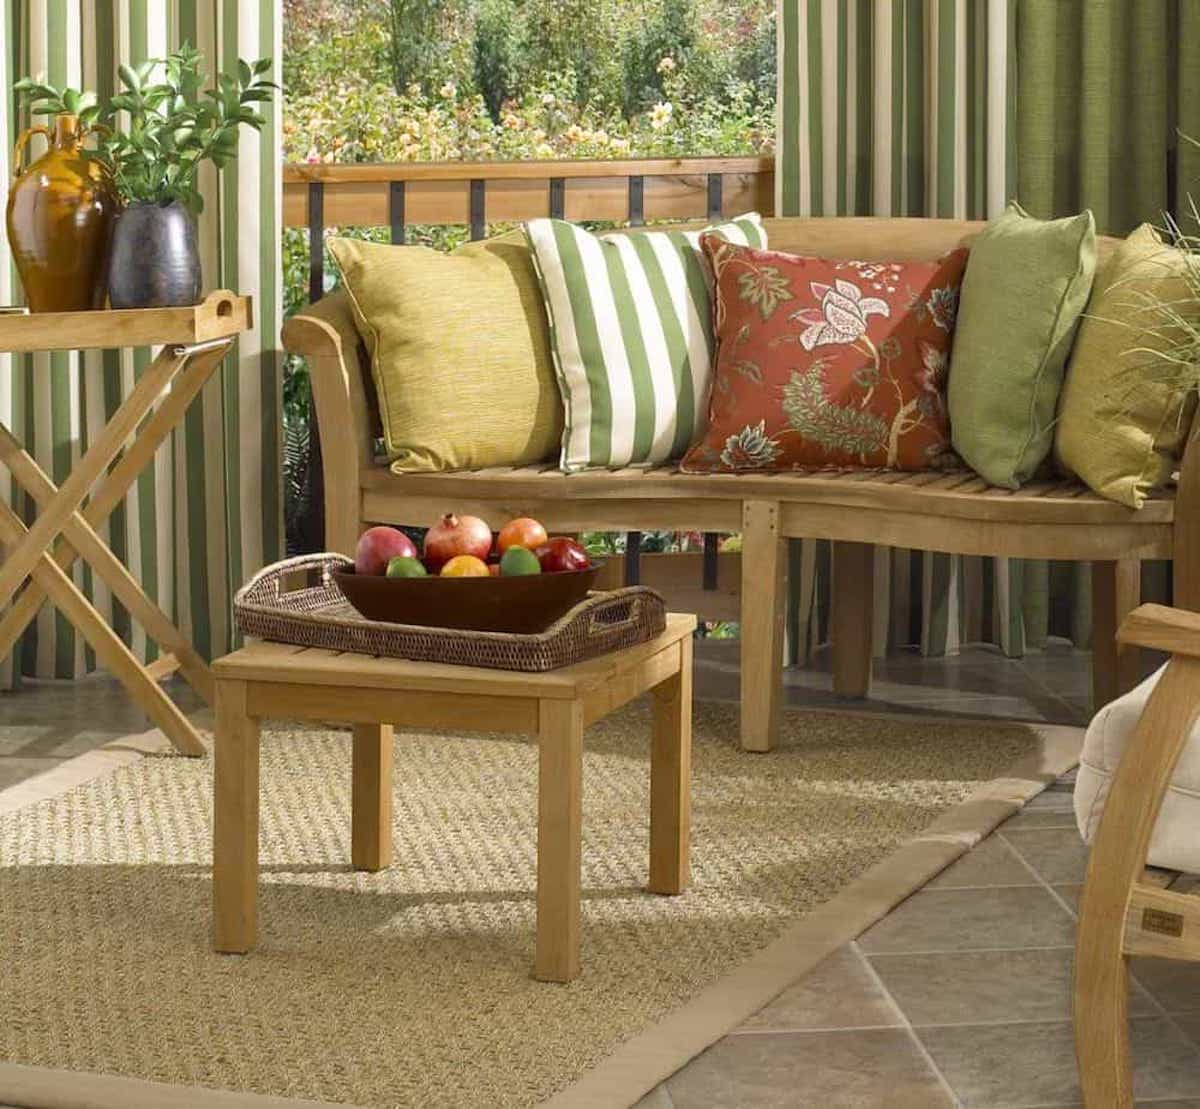 Custom Sisal Rug Details For Outdoor Living Room (Image 7 of 15)